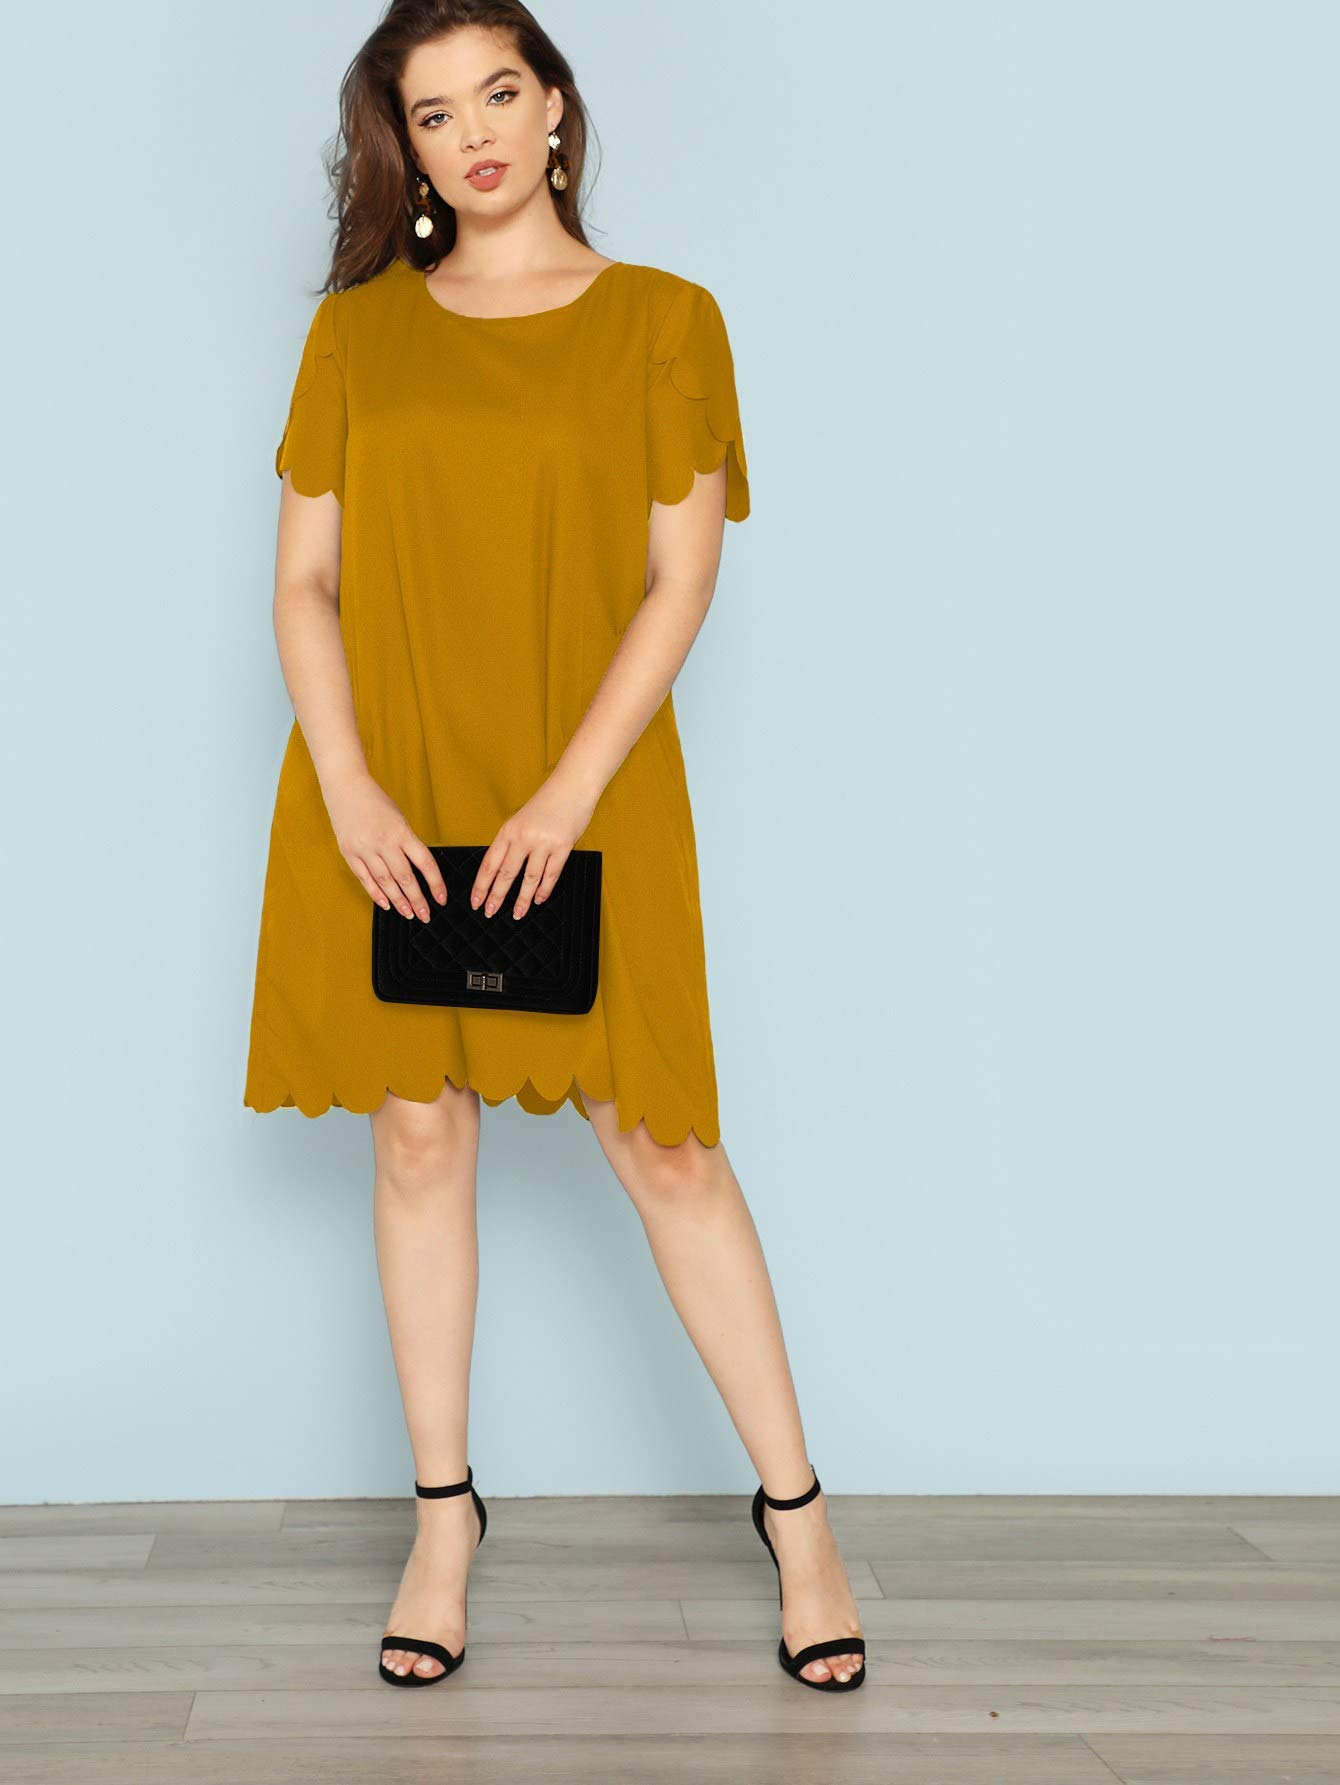 Romwe Womens Plus Size Solid Short Sleeve Scalloped Casual Loose Tunic Dress